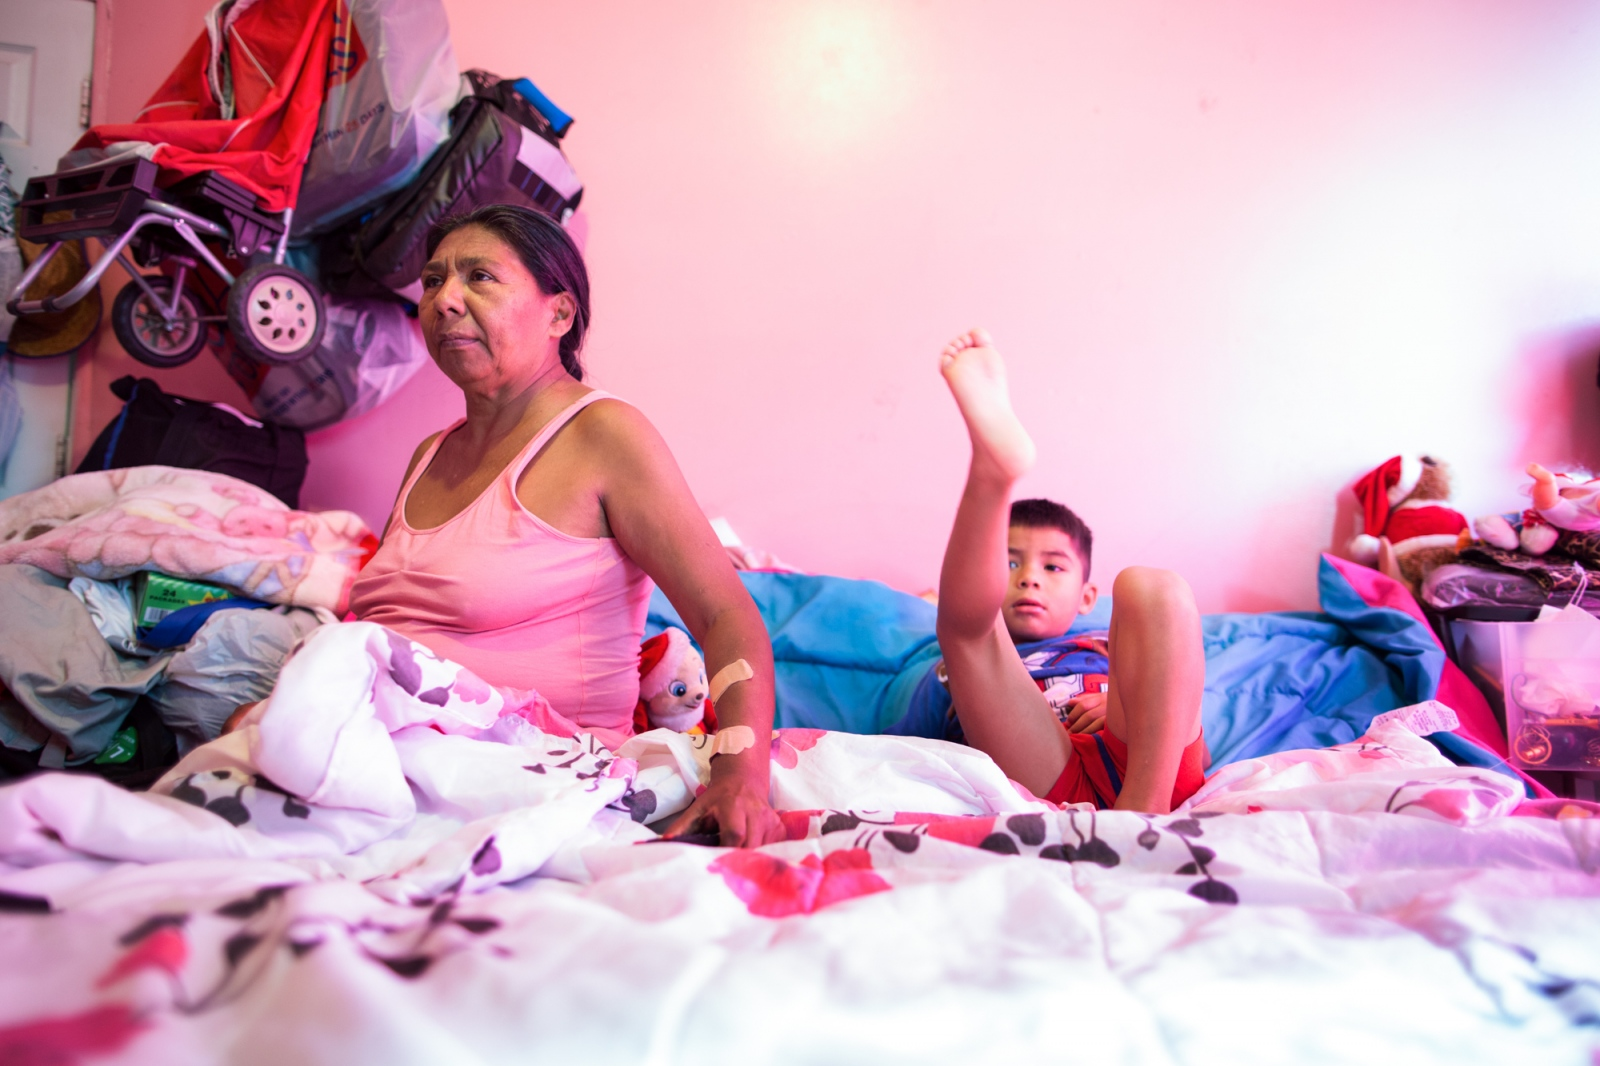 """Dionisia Guadalupe watching television and taking care of her grandson Oscar. Dionisia is 56 years old and has 4 grandchildren, two in Mexico and two in New York with whom she lives. """"For me to be a grandmother is a beautiful thing, children fill me with love, they give me life,"""" says. Sunset Park, Brooklyn, New York, 2016"""